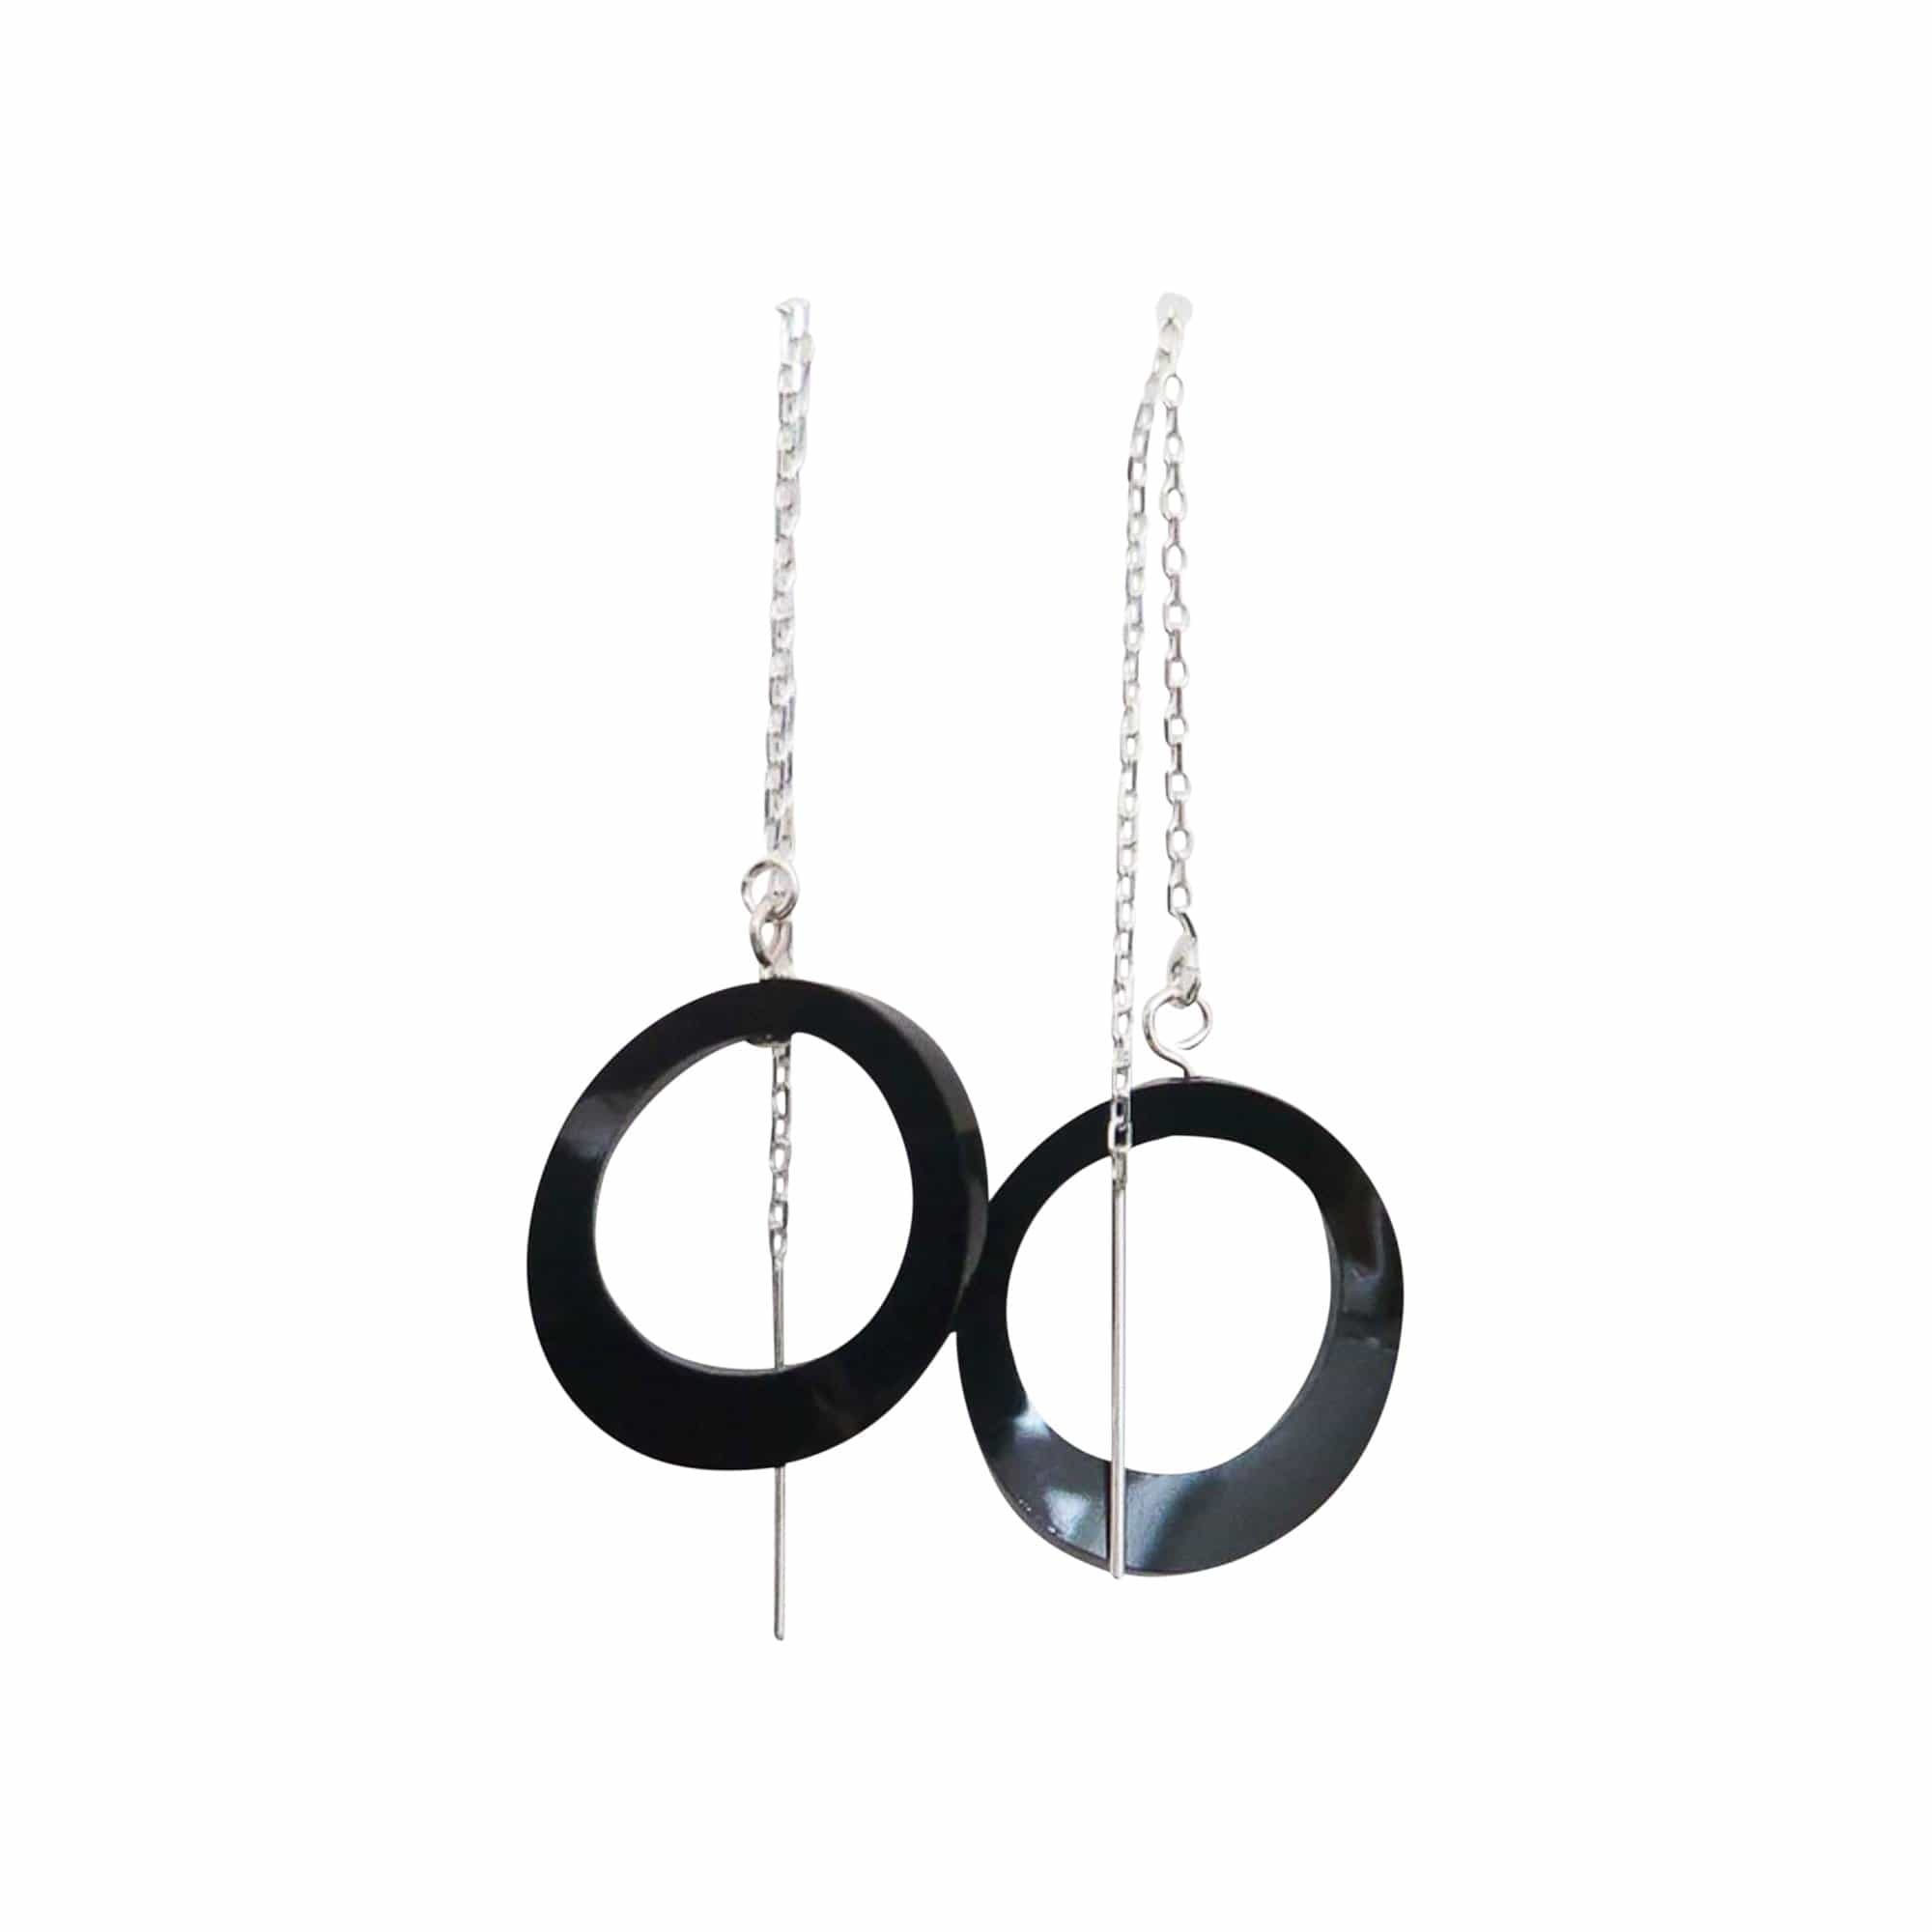 Ex Ovo Earrings One Size / Black Ovals on Chain Earrings